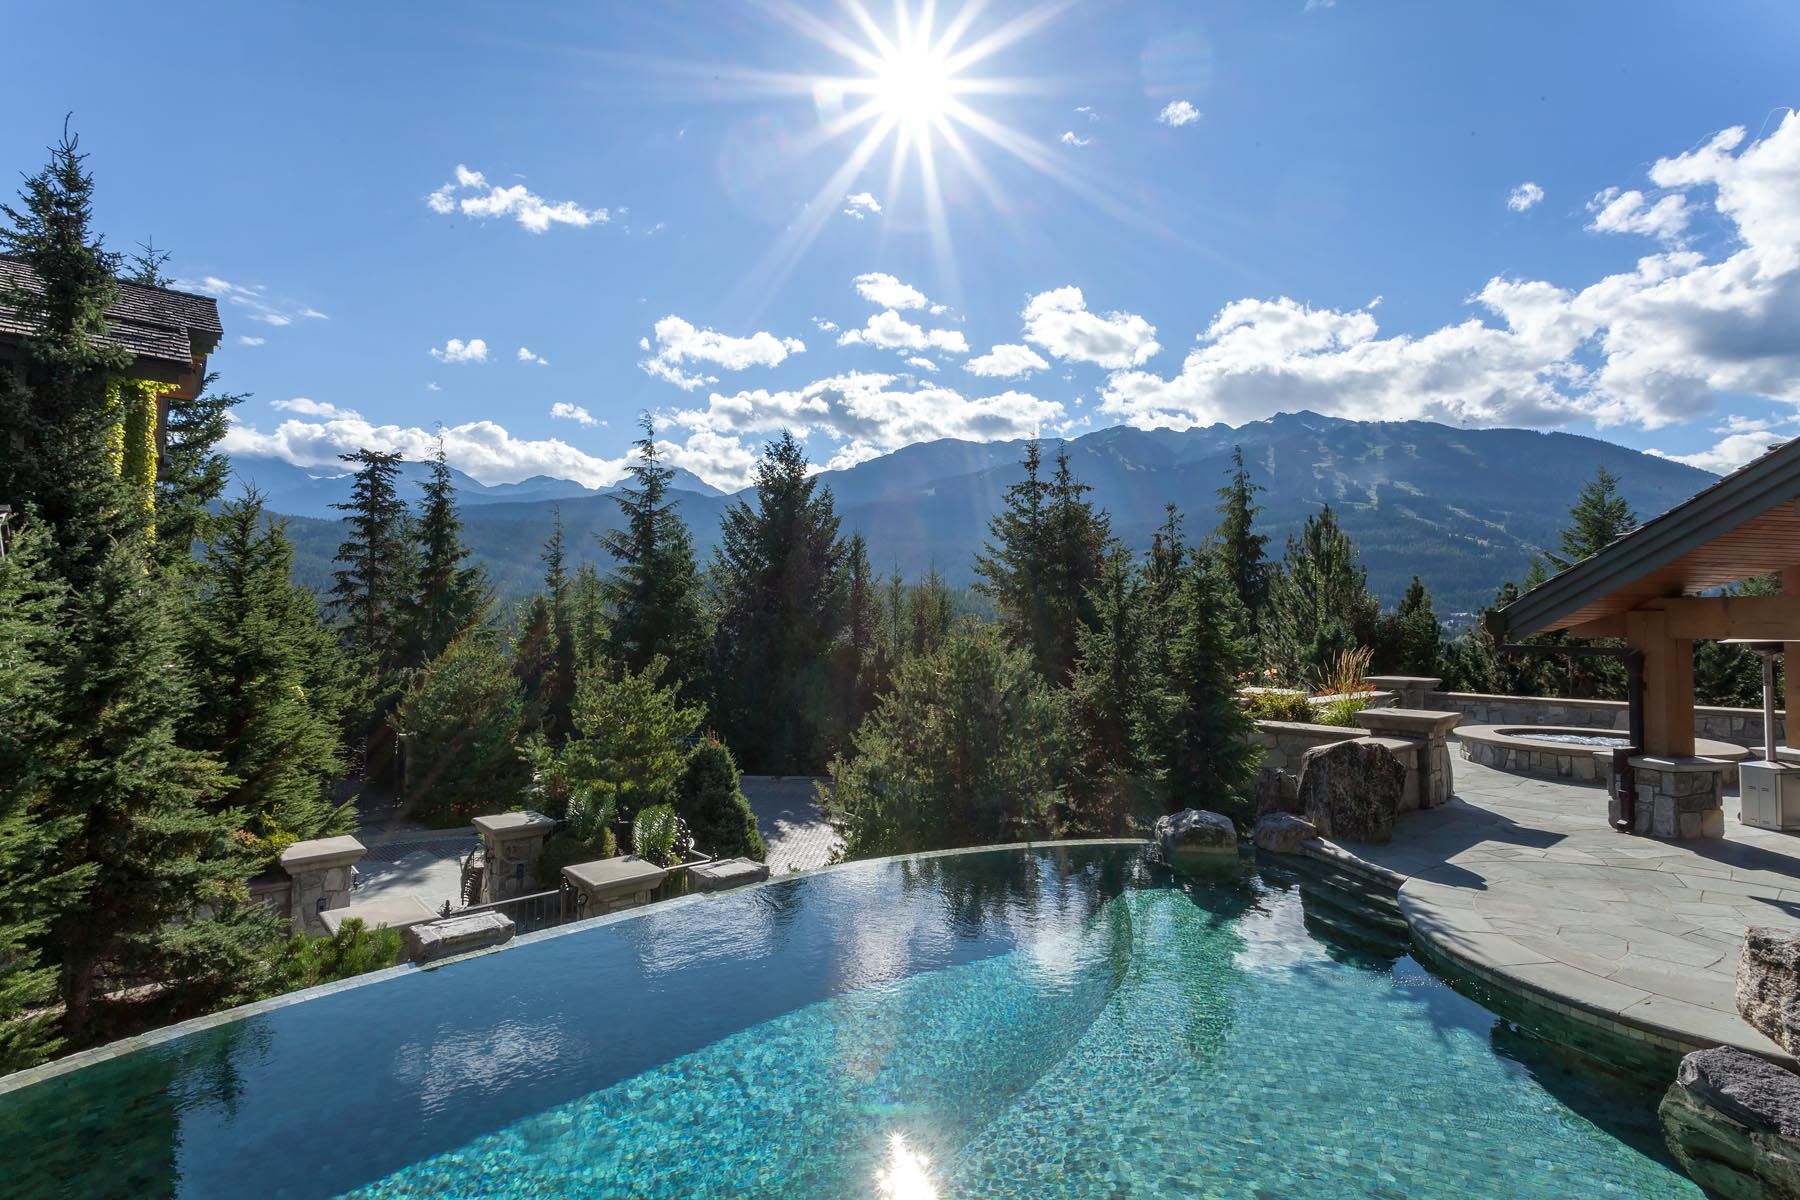 Photo courtesy of whistlerrealestate.ca